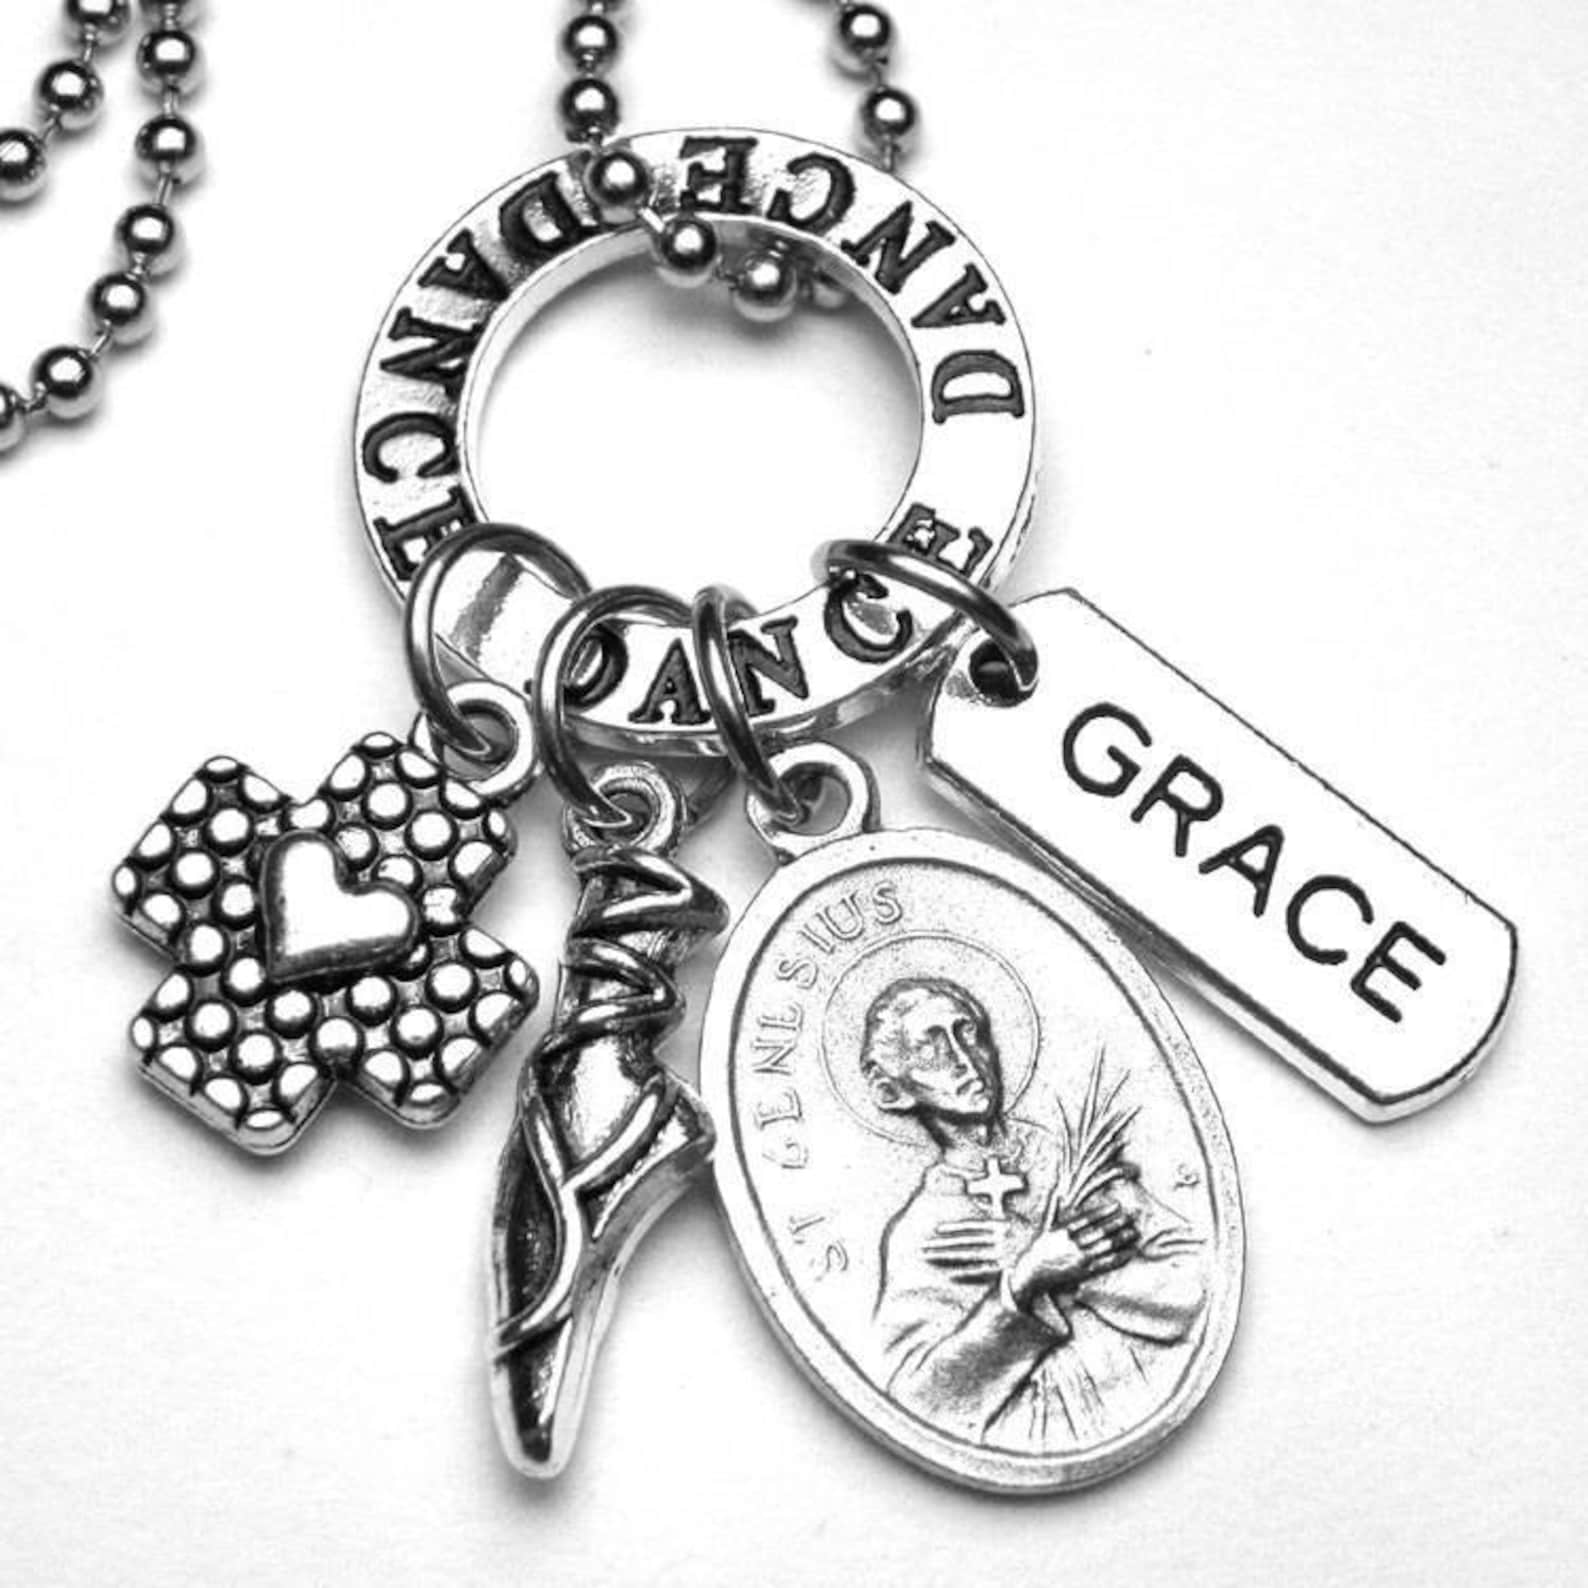 dancers patron saint st. genesius holy medal charm necklace or key chain keychain, catholic jewelry gift, grace, dance, ballet,